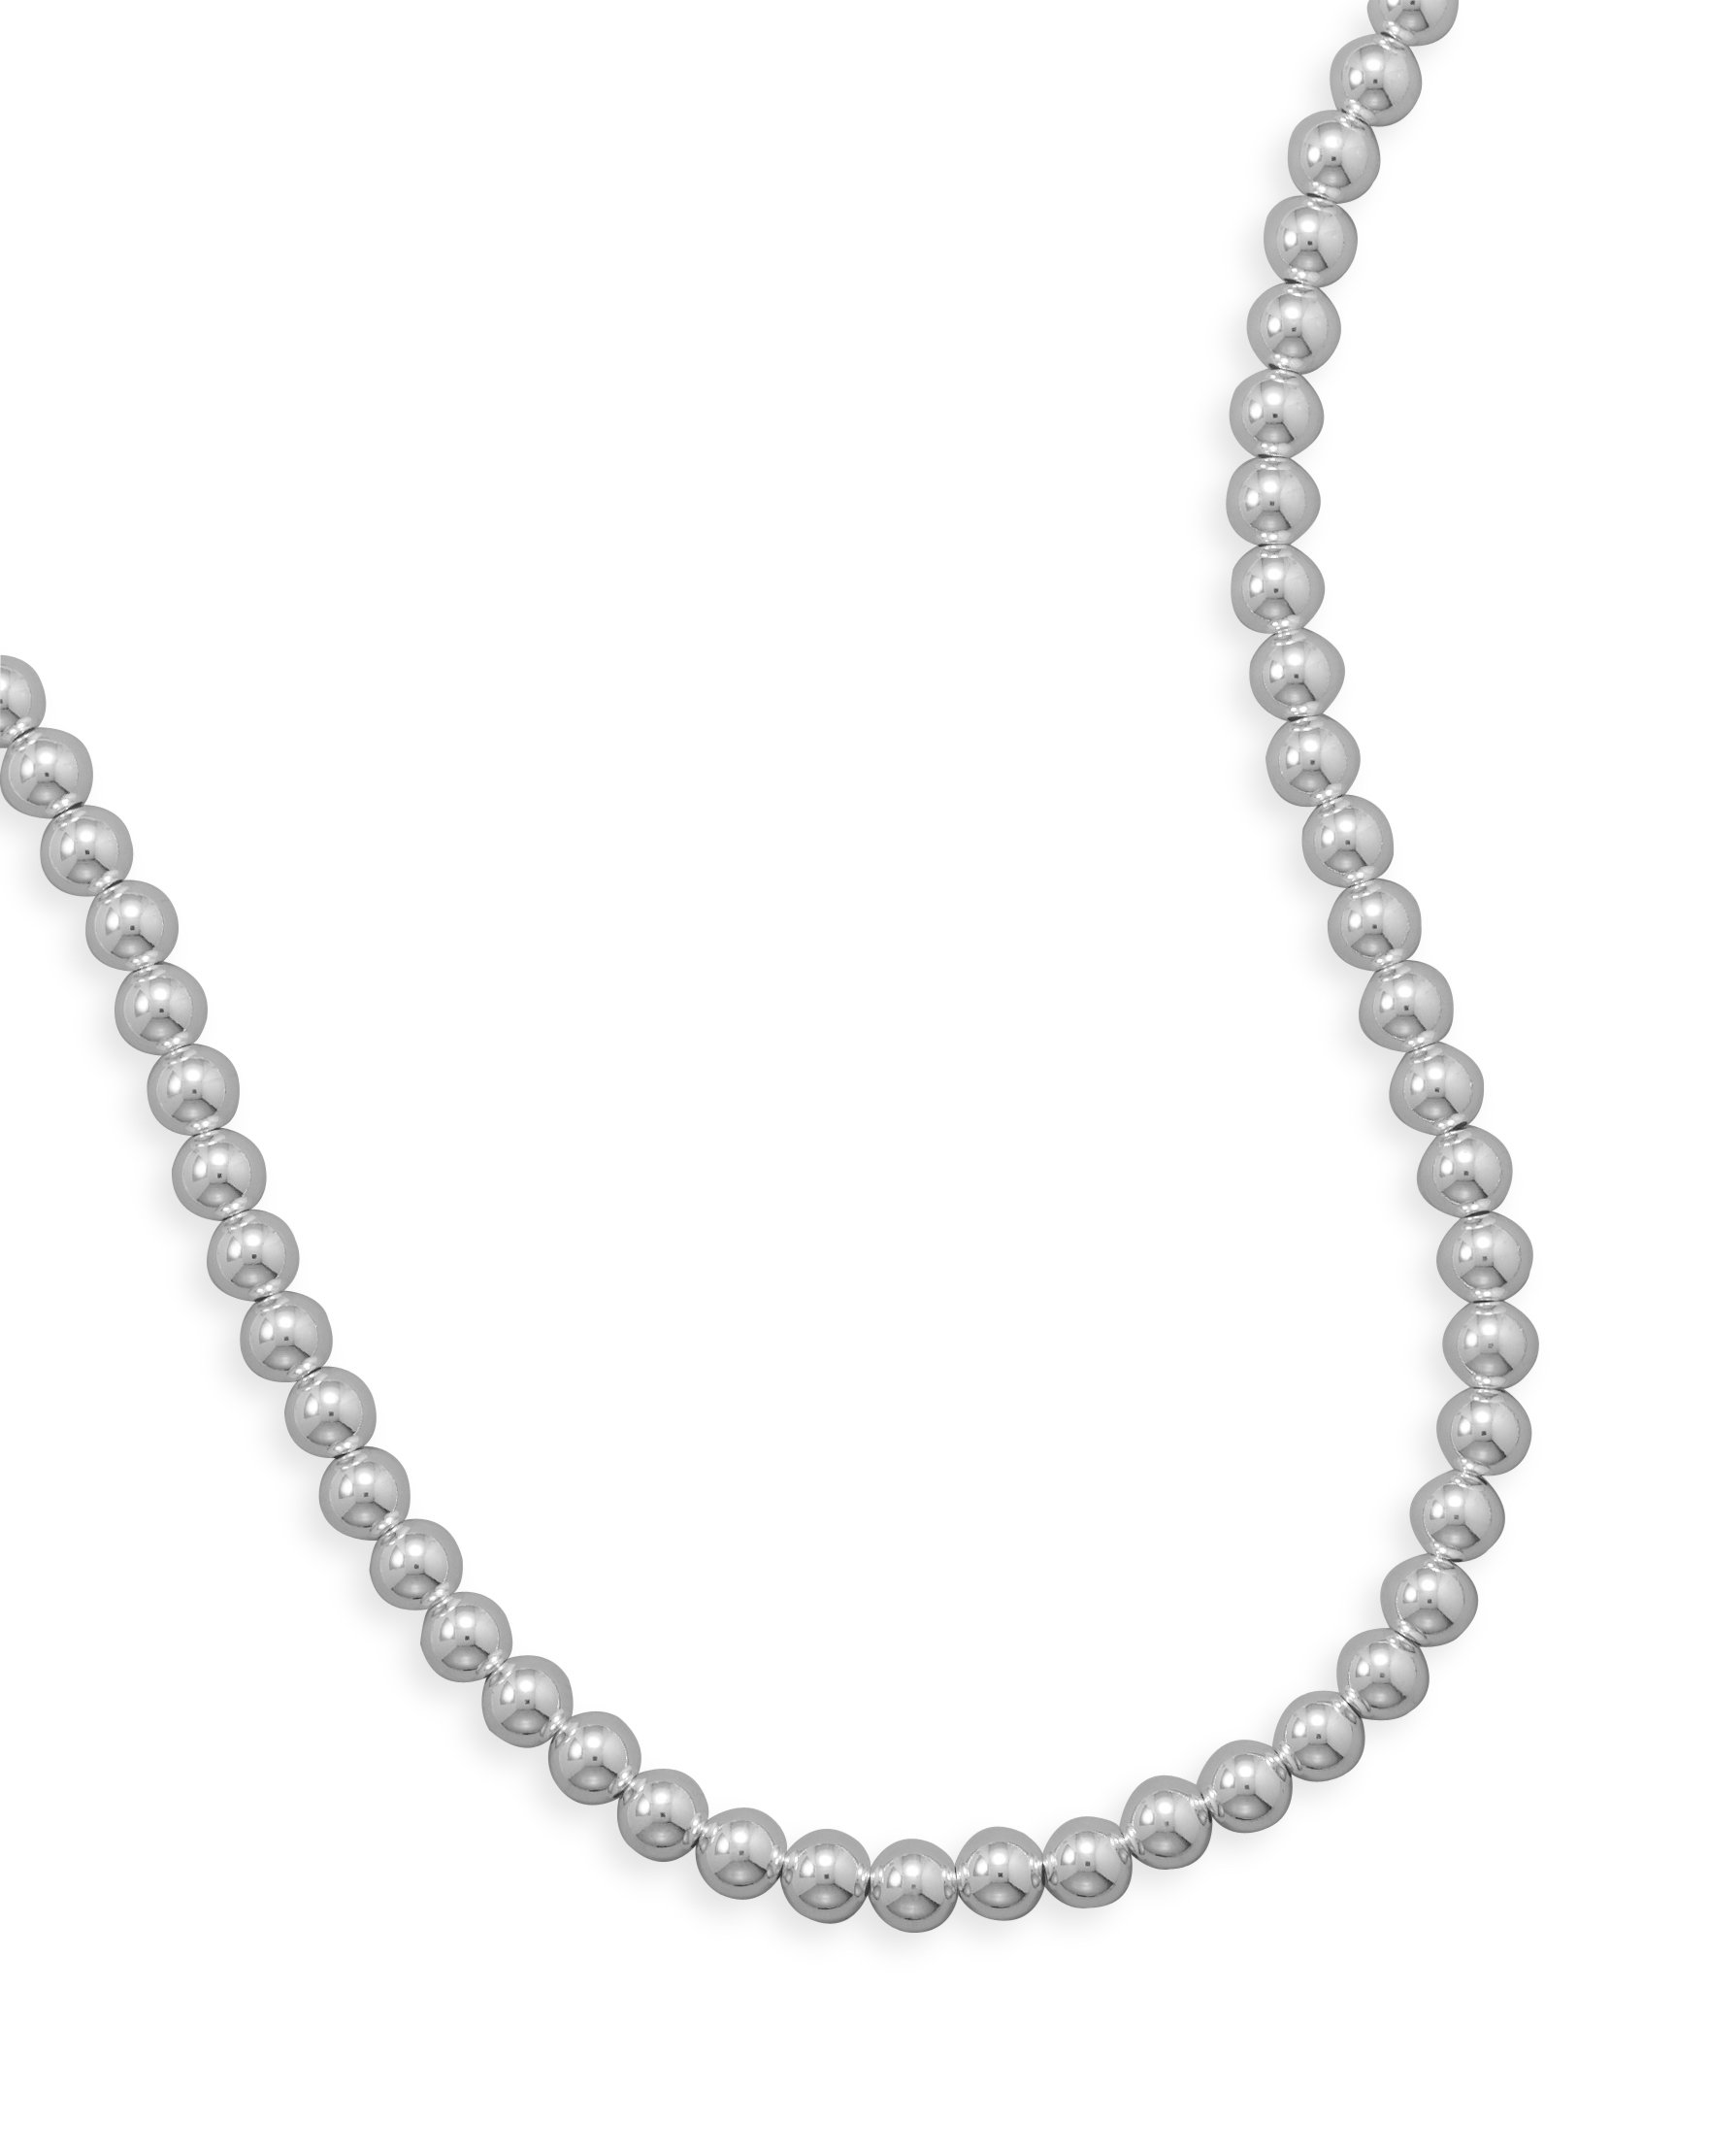 Sterling Silver Necklace, Lobster Clasp, 24 inch long, 8mm Bead/Ball